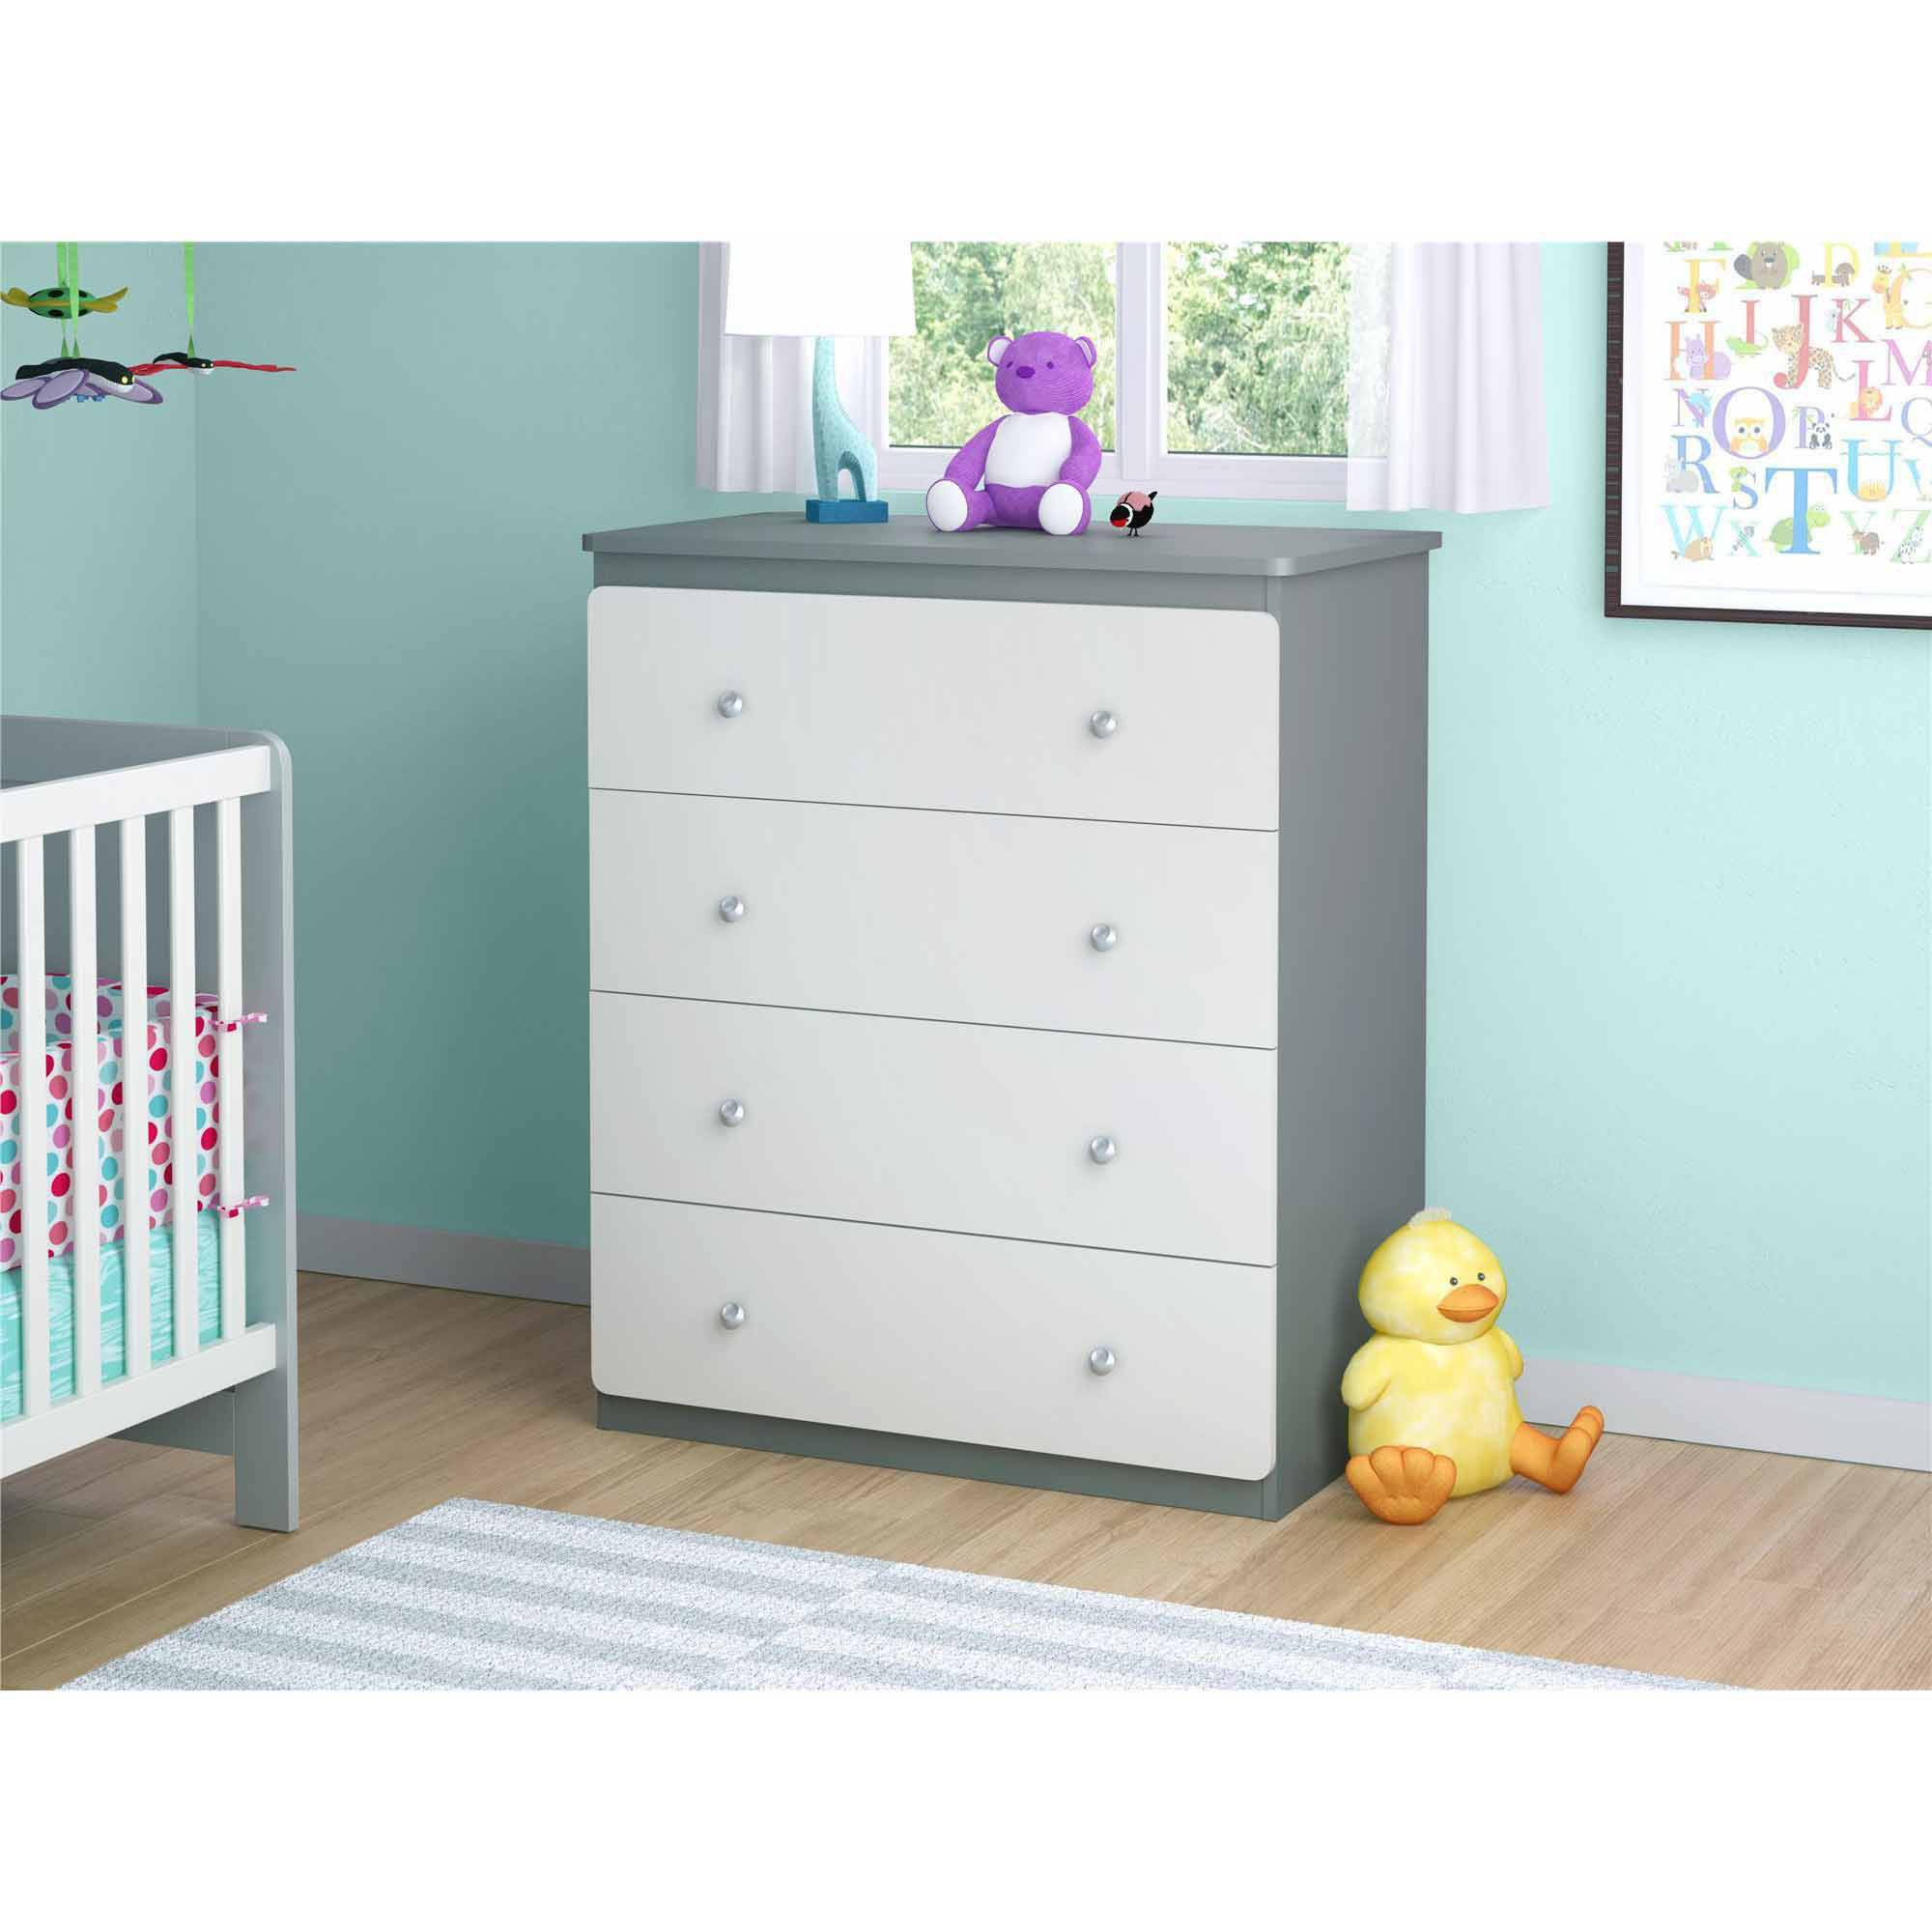 Cosco Willow Lake 4 Drawer Dresser Coffee House, Multiple Colors